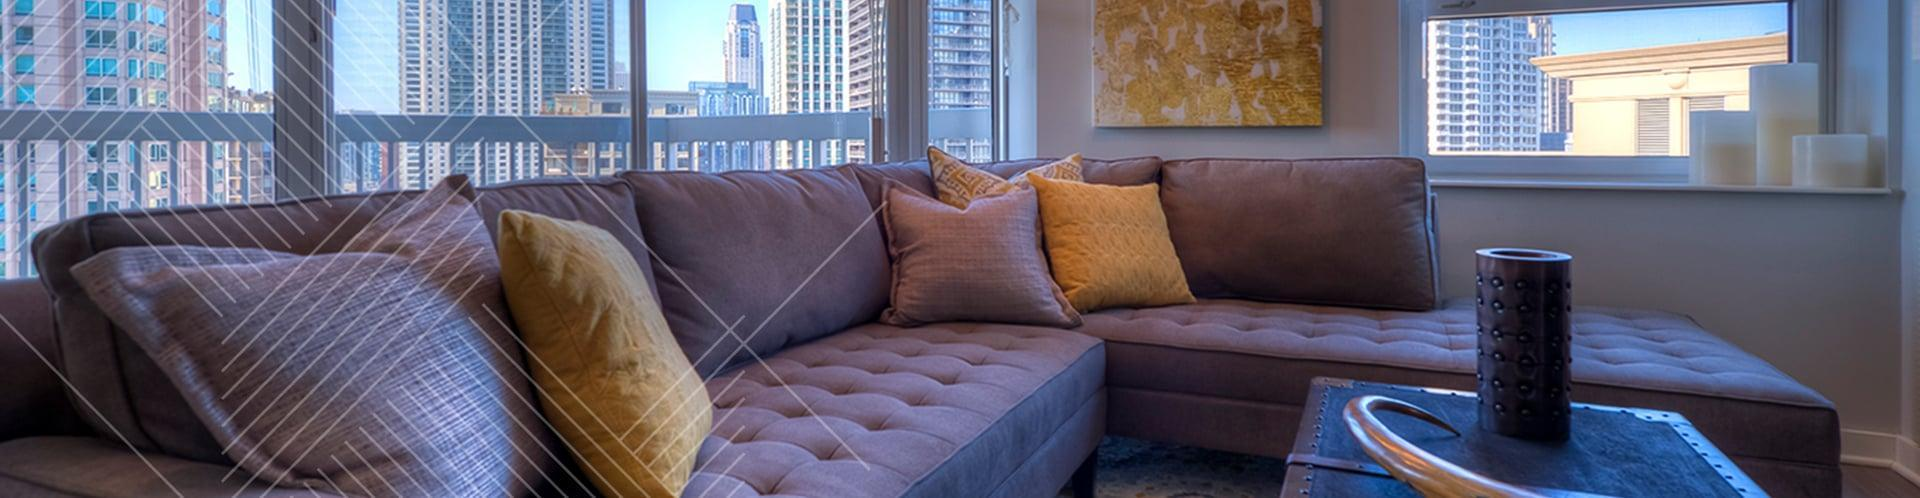 540 N State St #004402, Chicago, IL - $3,680 USD/ month